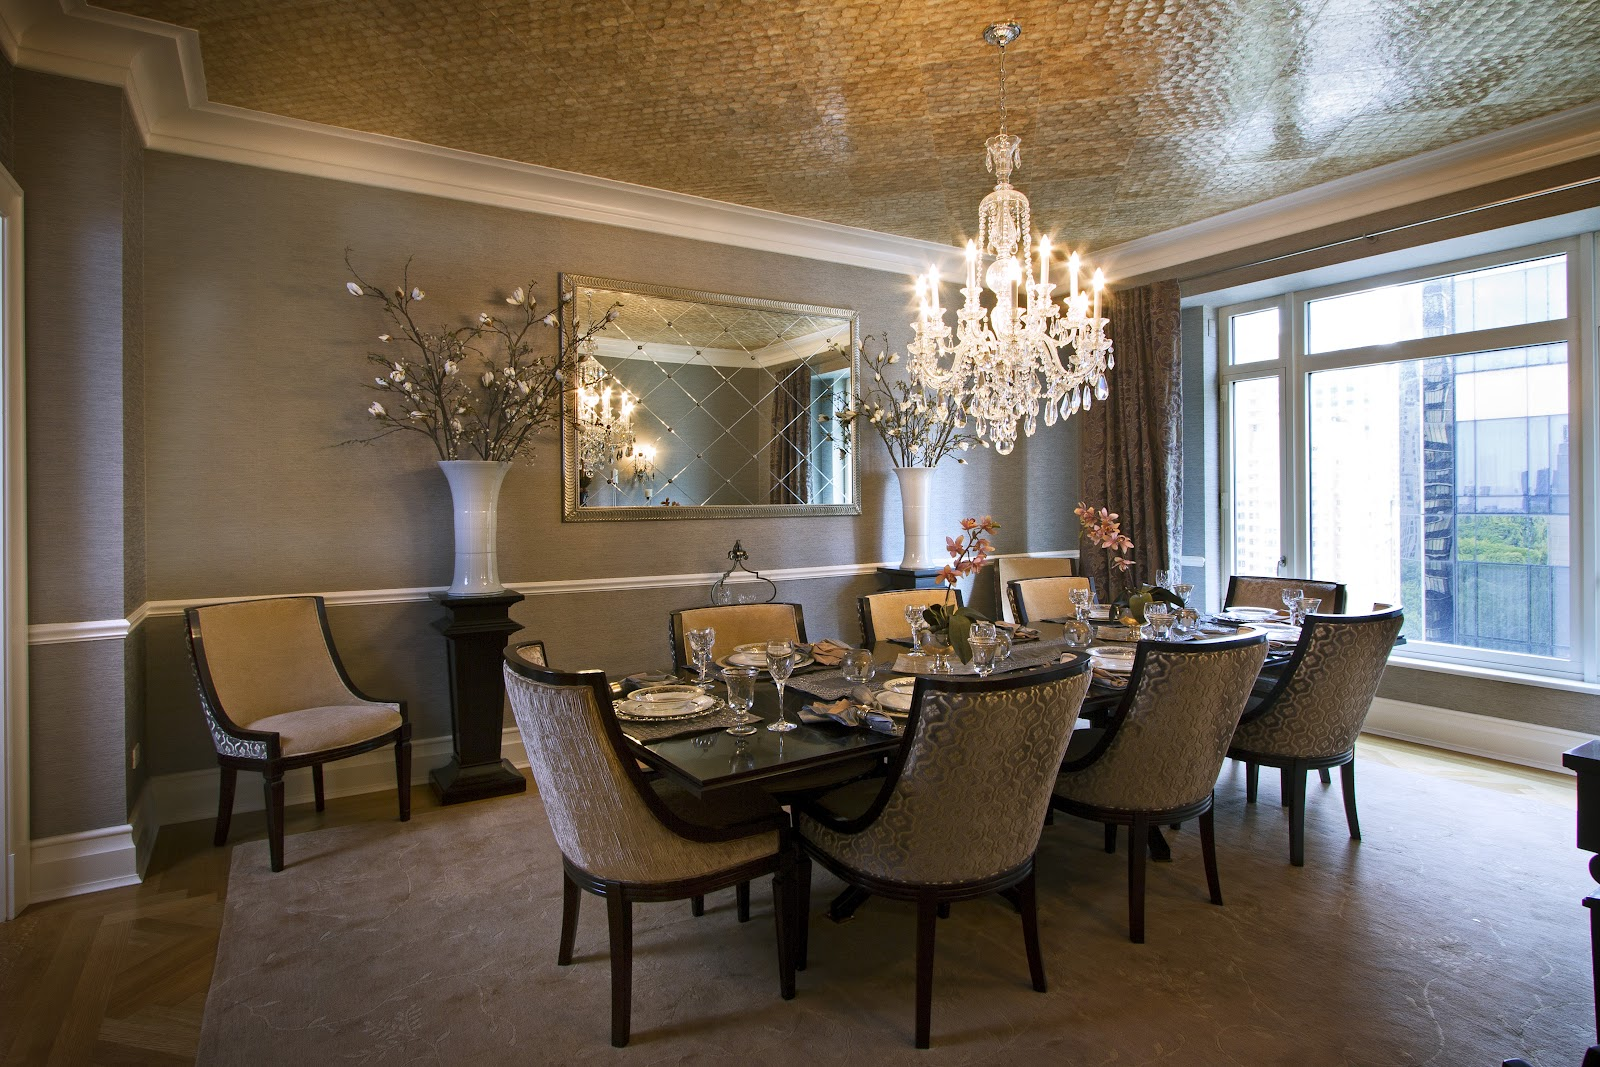 A rejeanne interiors june 2012 for Beautiful dining room photos